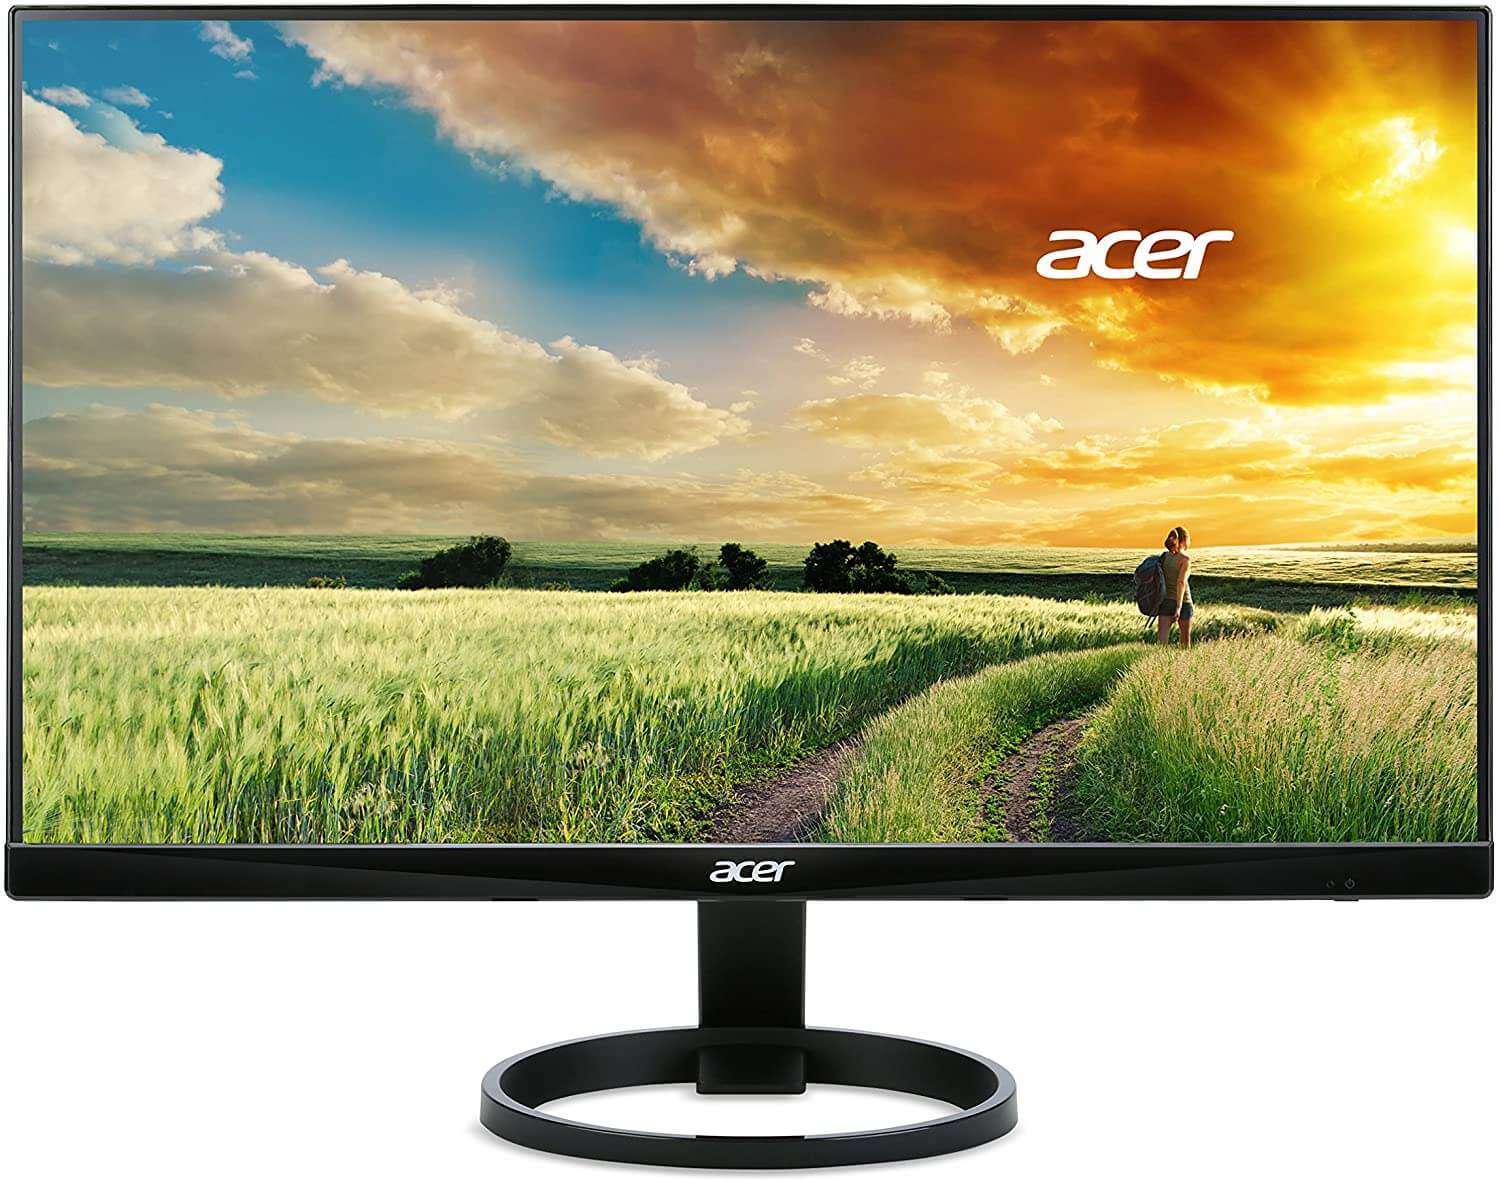 Acer IPS Glossy Monitor